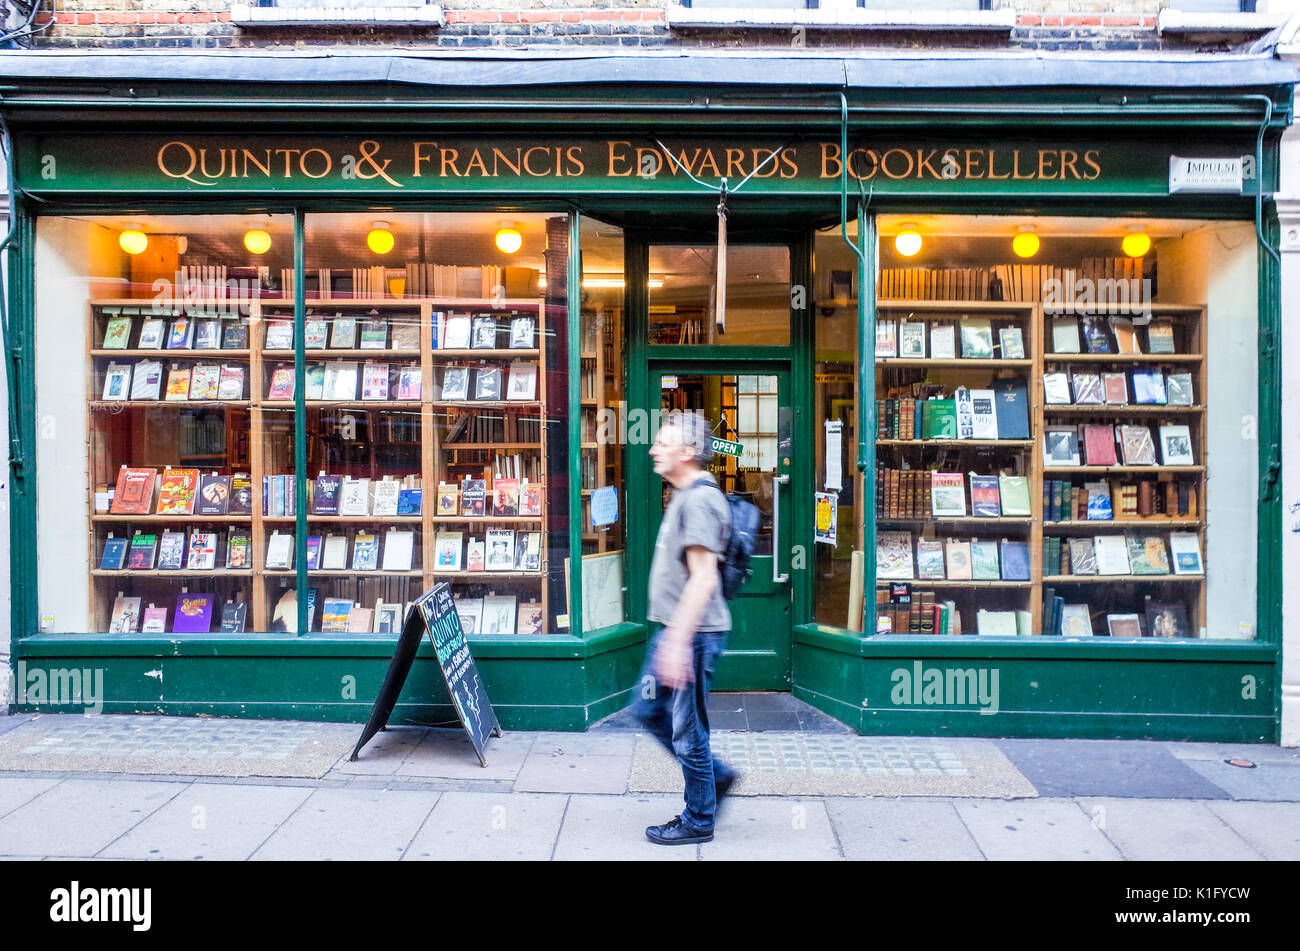 Quinto and Francis Edwards Booksellers - secondhand and antiquarian bookshop in Charing Cross Road Central London UK - Stock Image